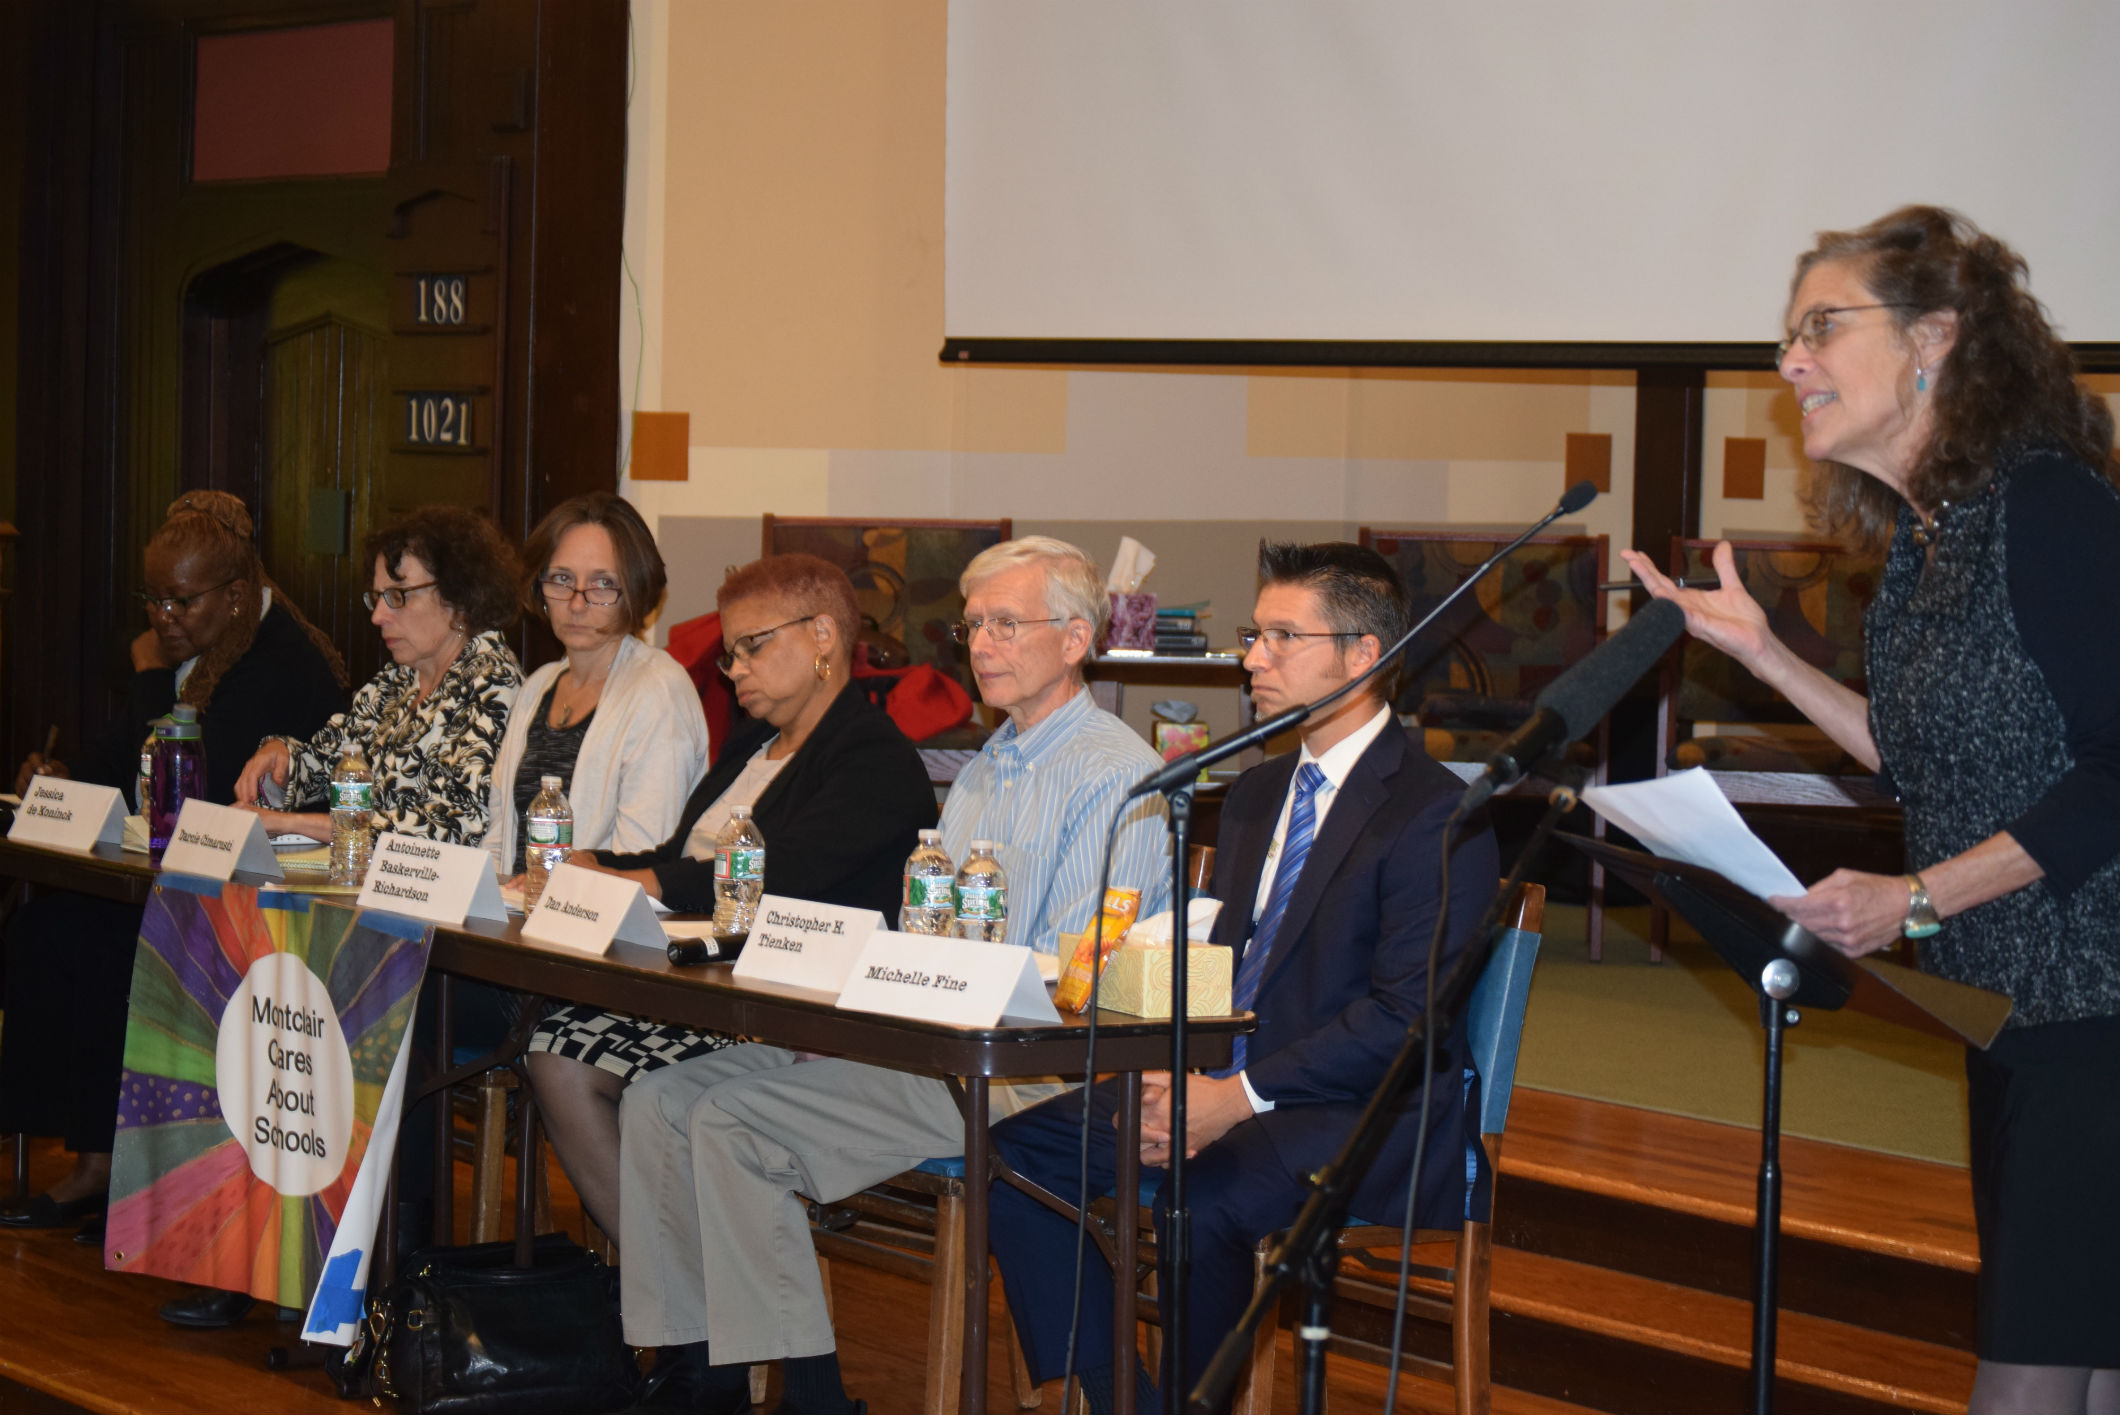 175 Gathered in Montclair for Roundtable Discussion Over PARCC Assessment Concerns